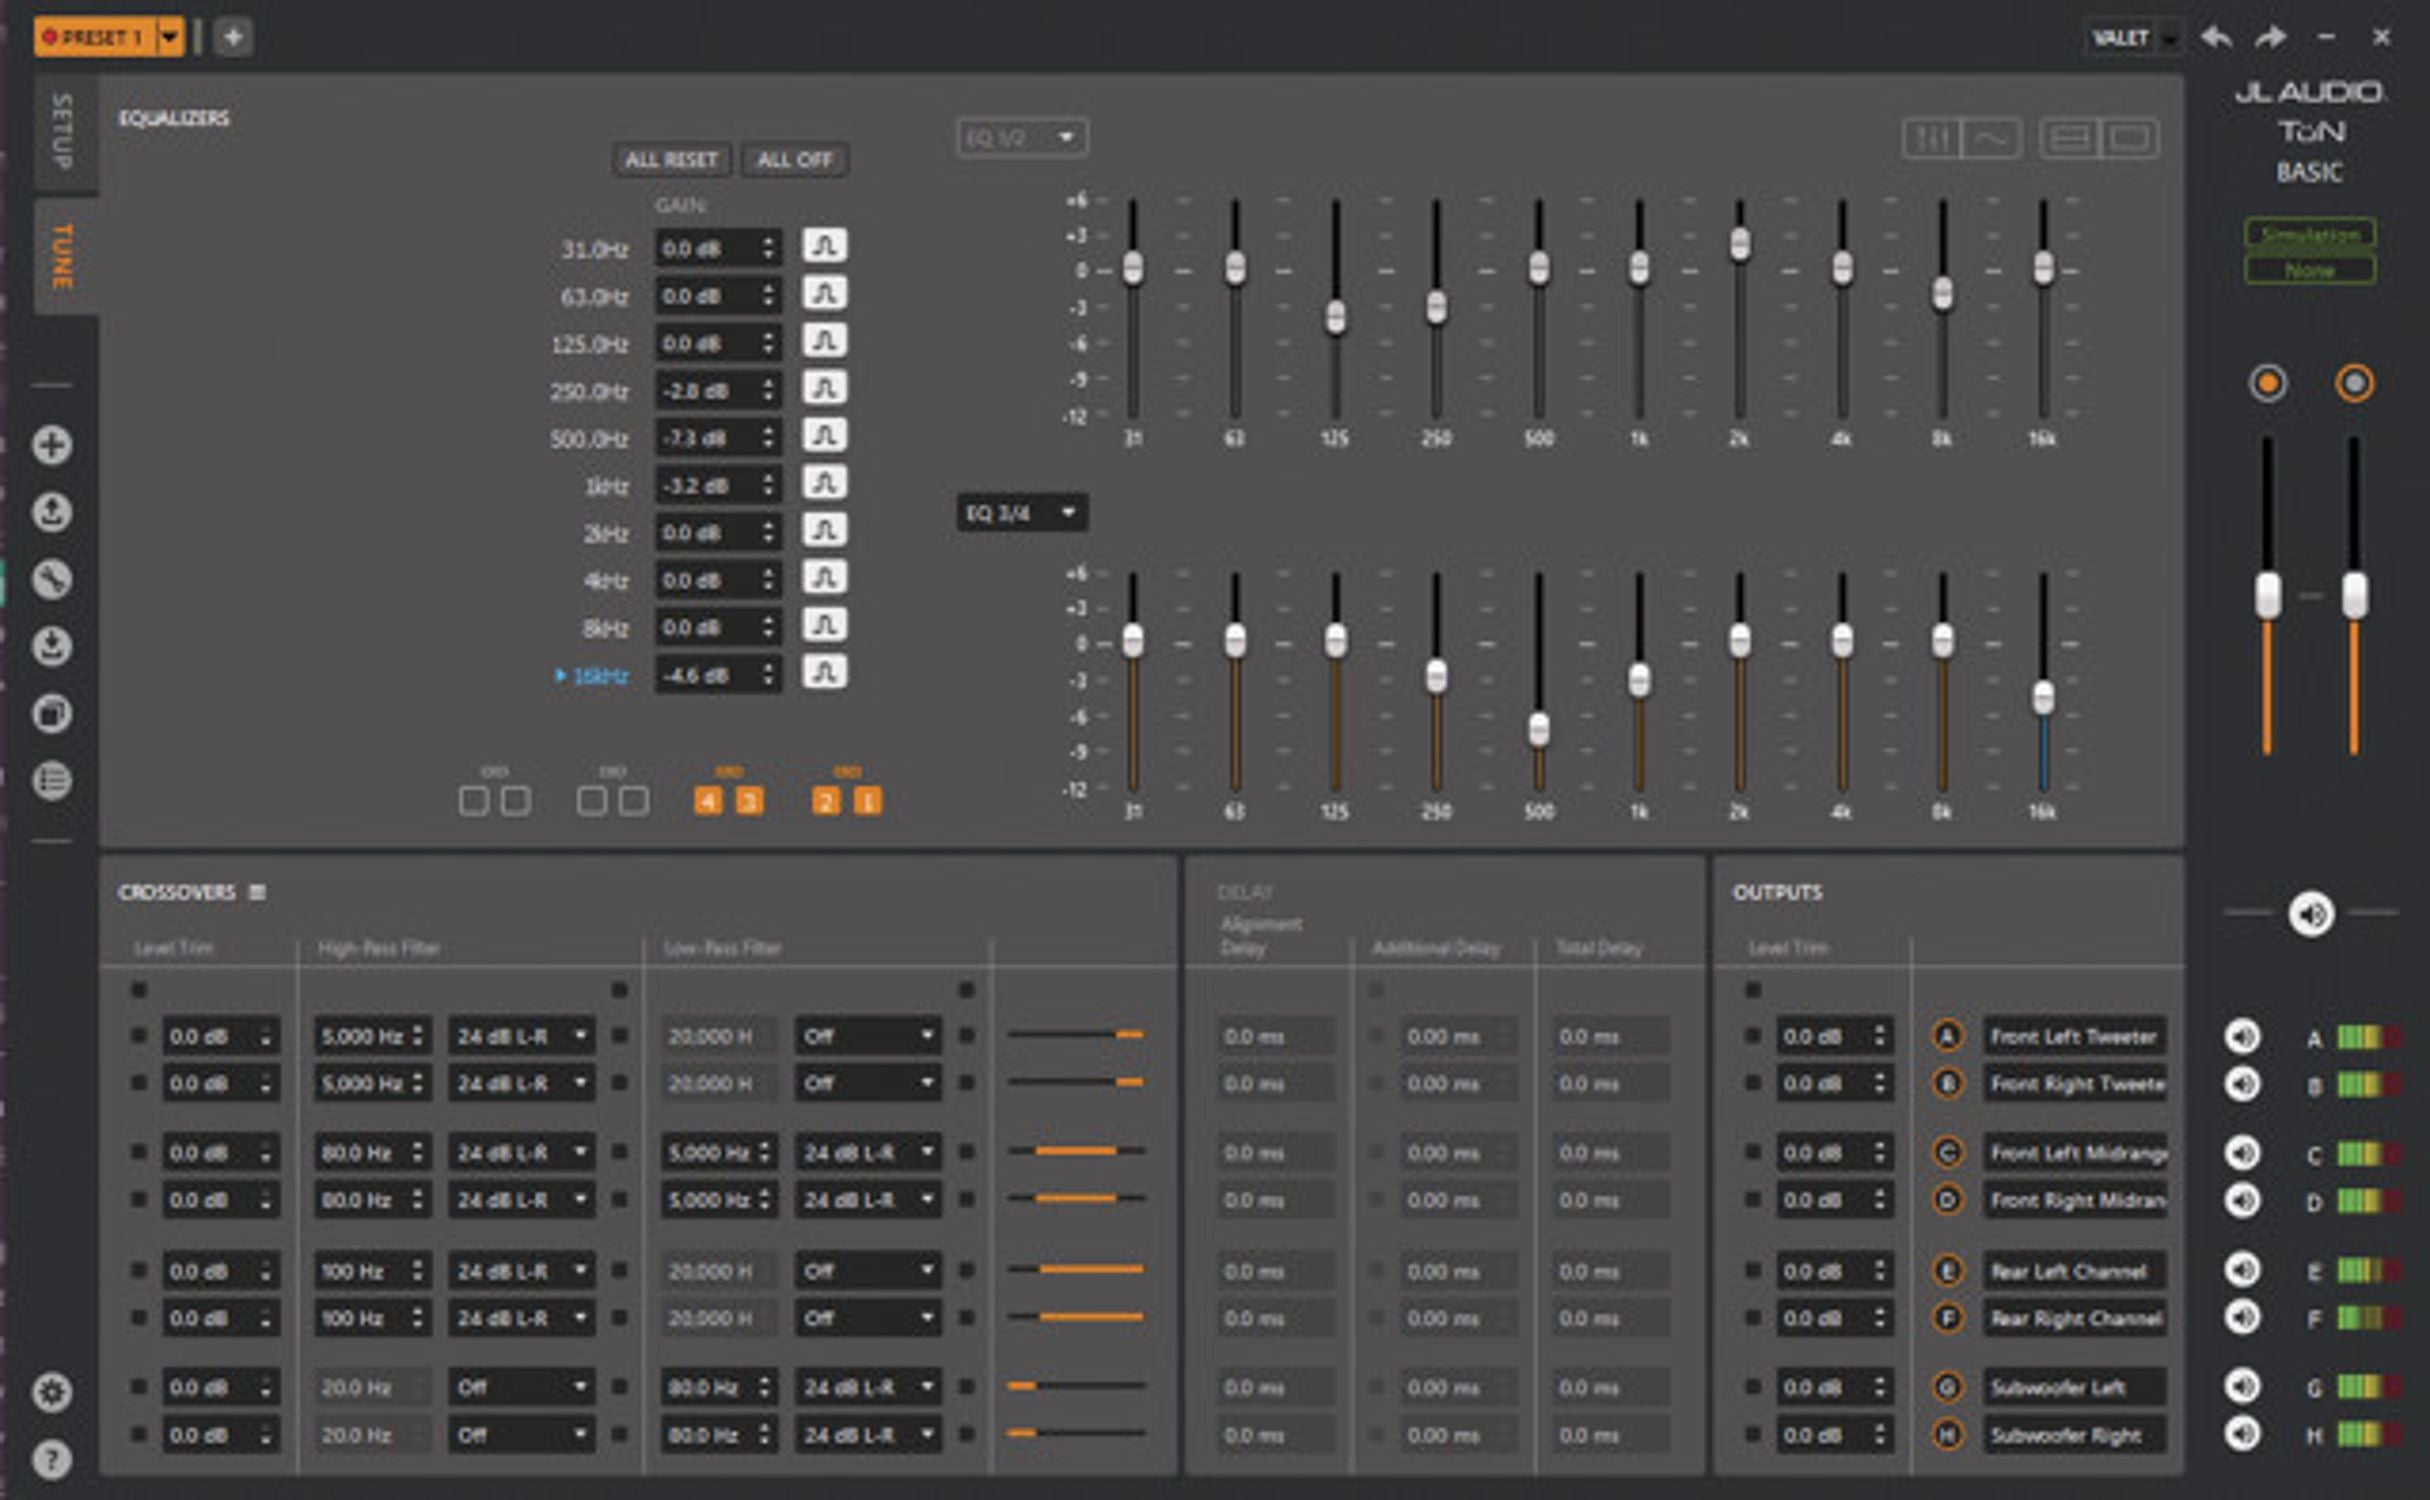 Screen Shot of the User Interface of TüN Software in Basic Tuning Mode